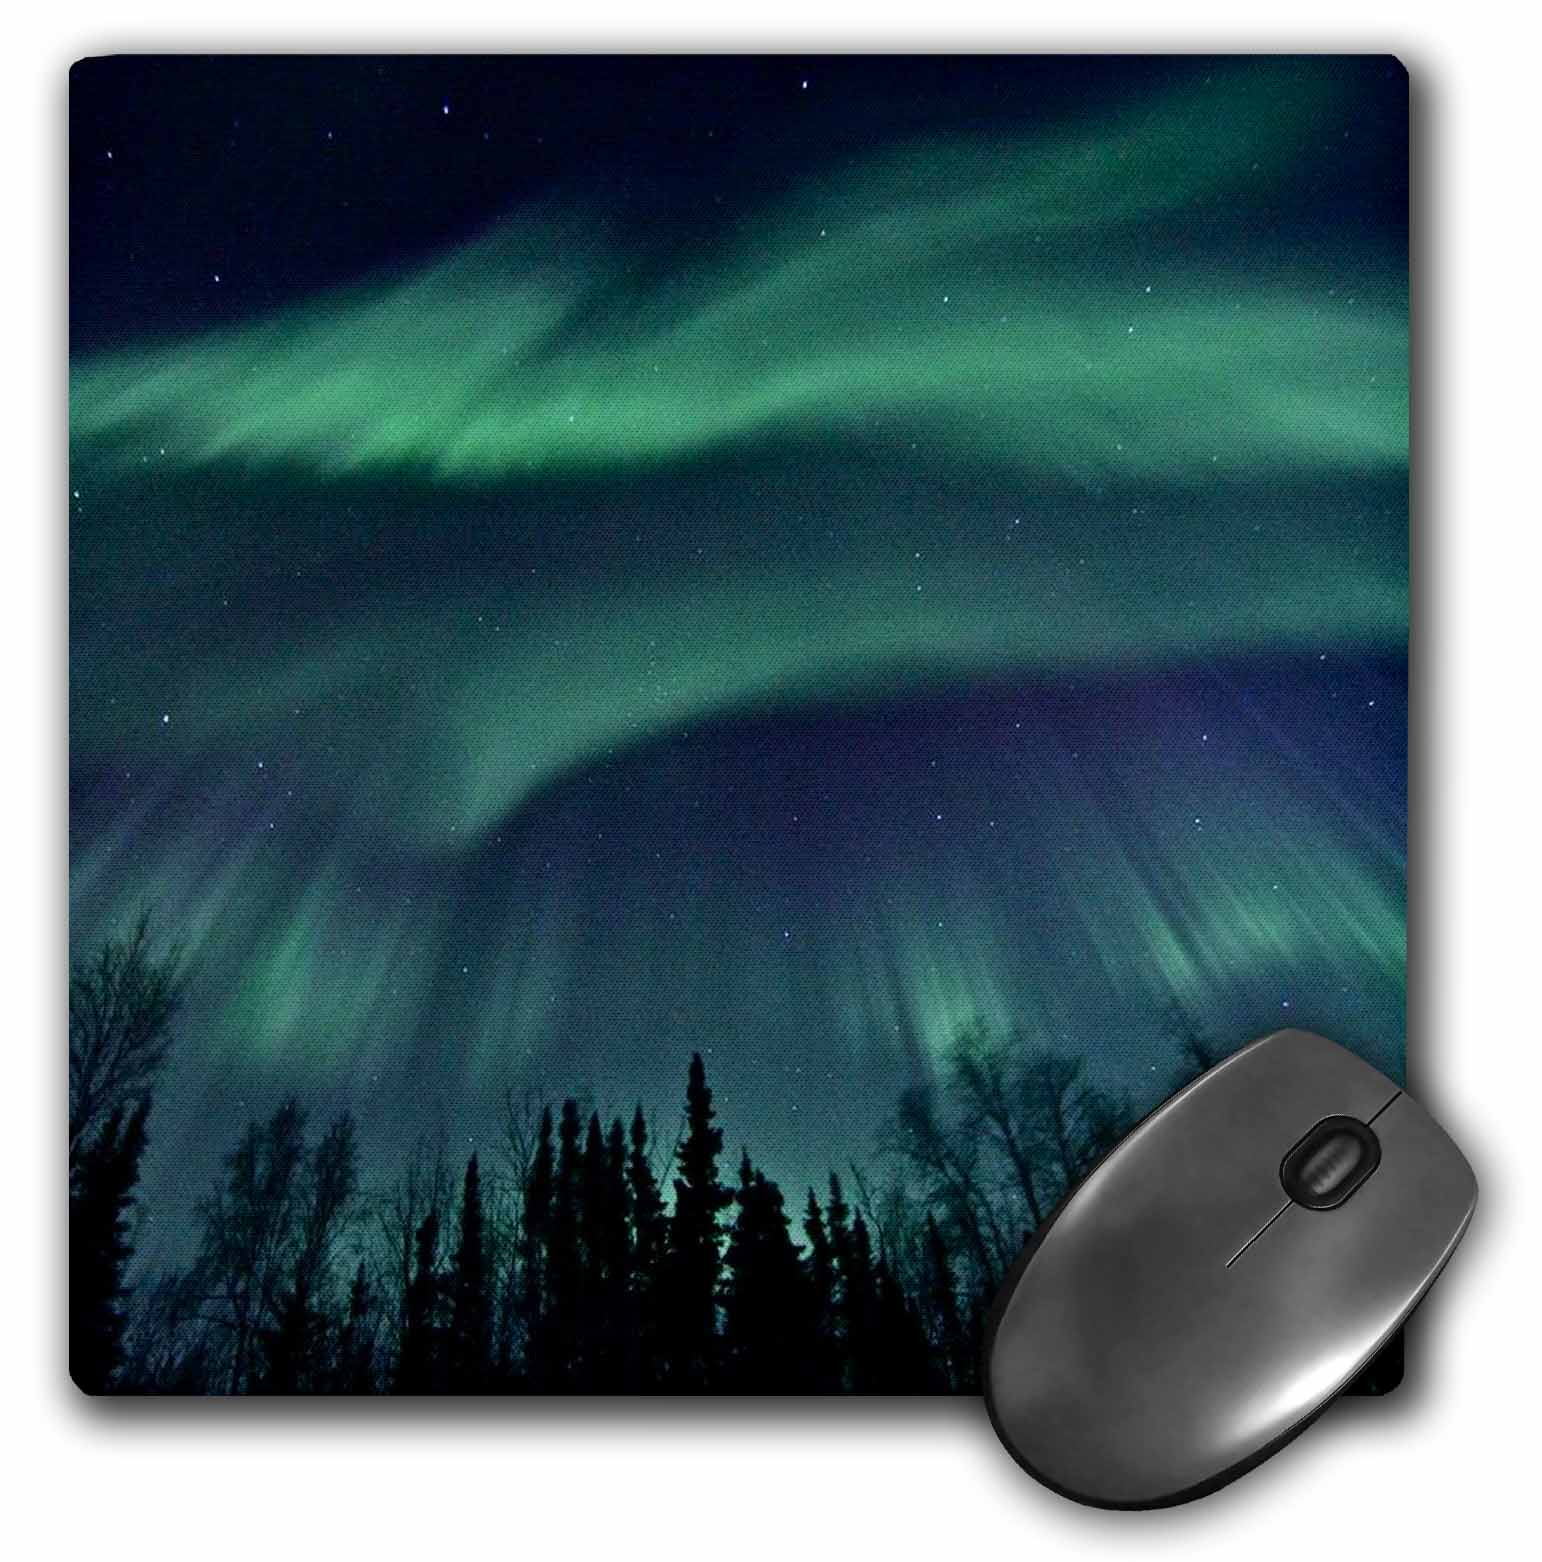 3dRose Northern Lights in Shade of Green Amongst a Dark Blue Night Sky, Mouse Pad, 8 by 8 inches